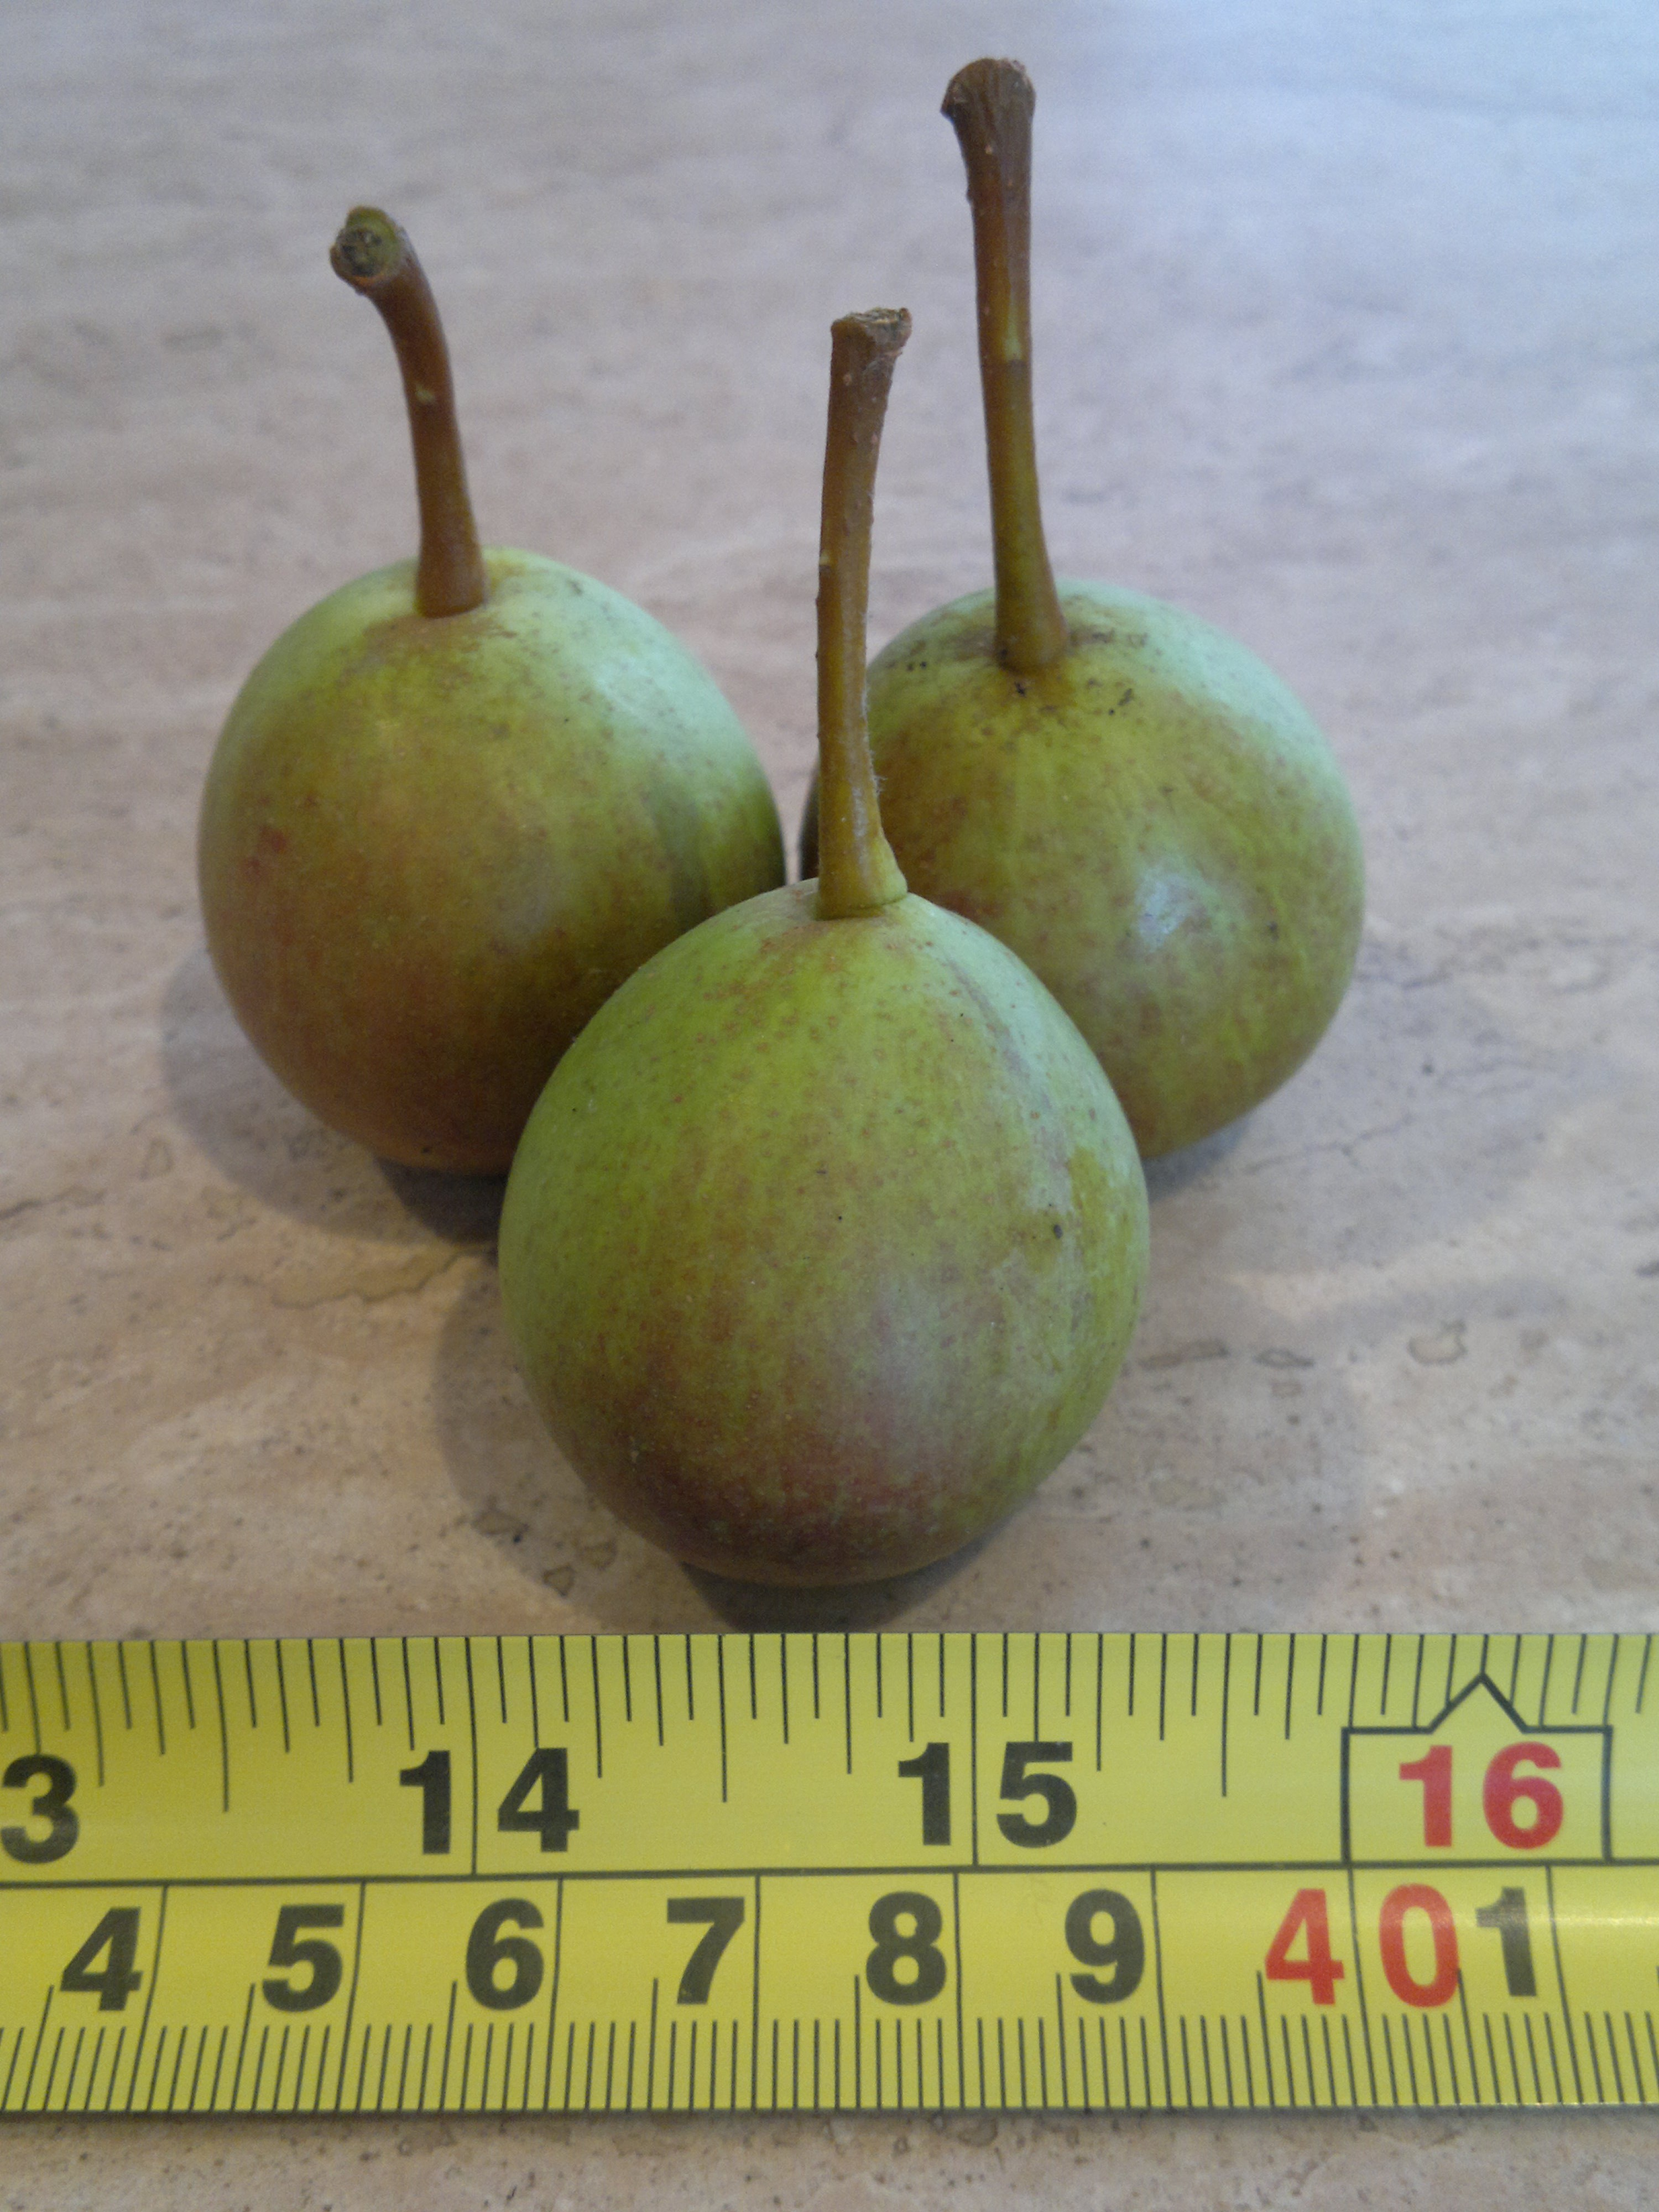 The small fruits of early pear Doyenne d'Ete